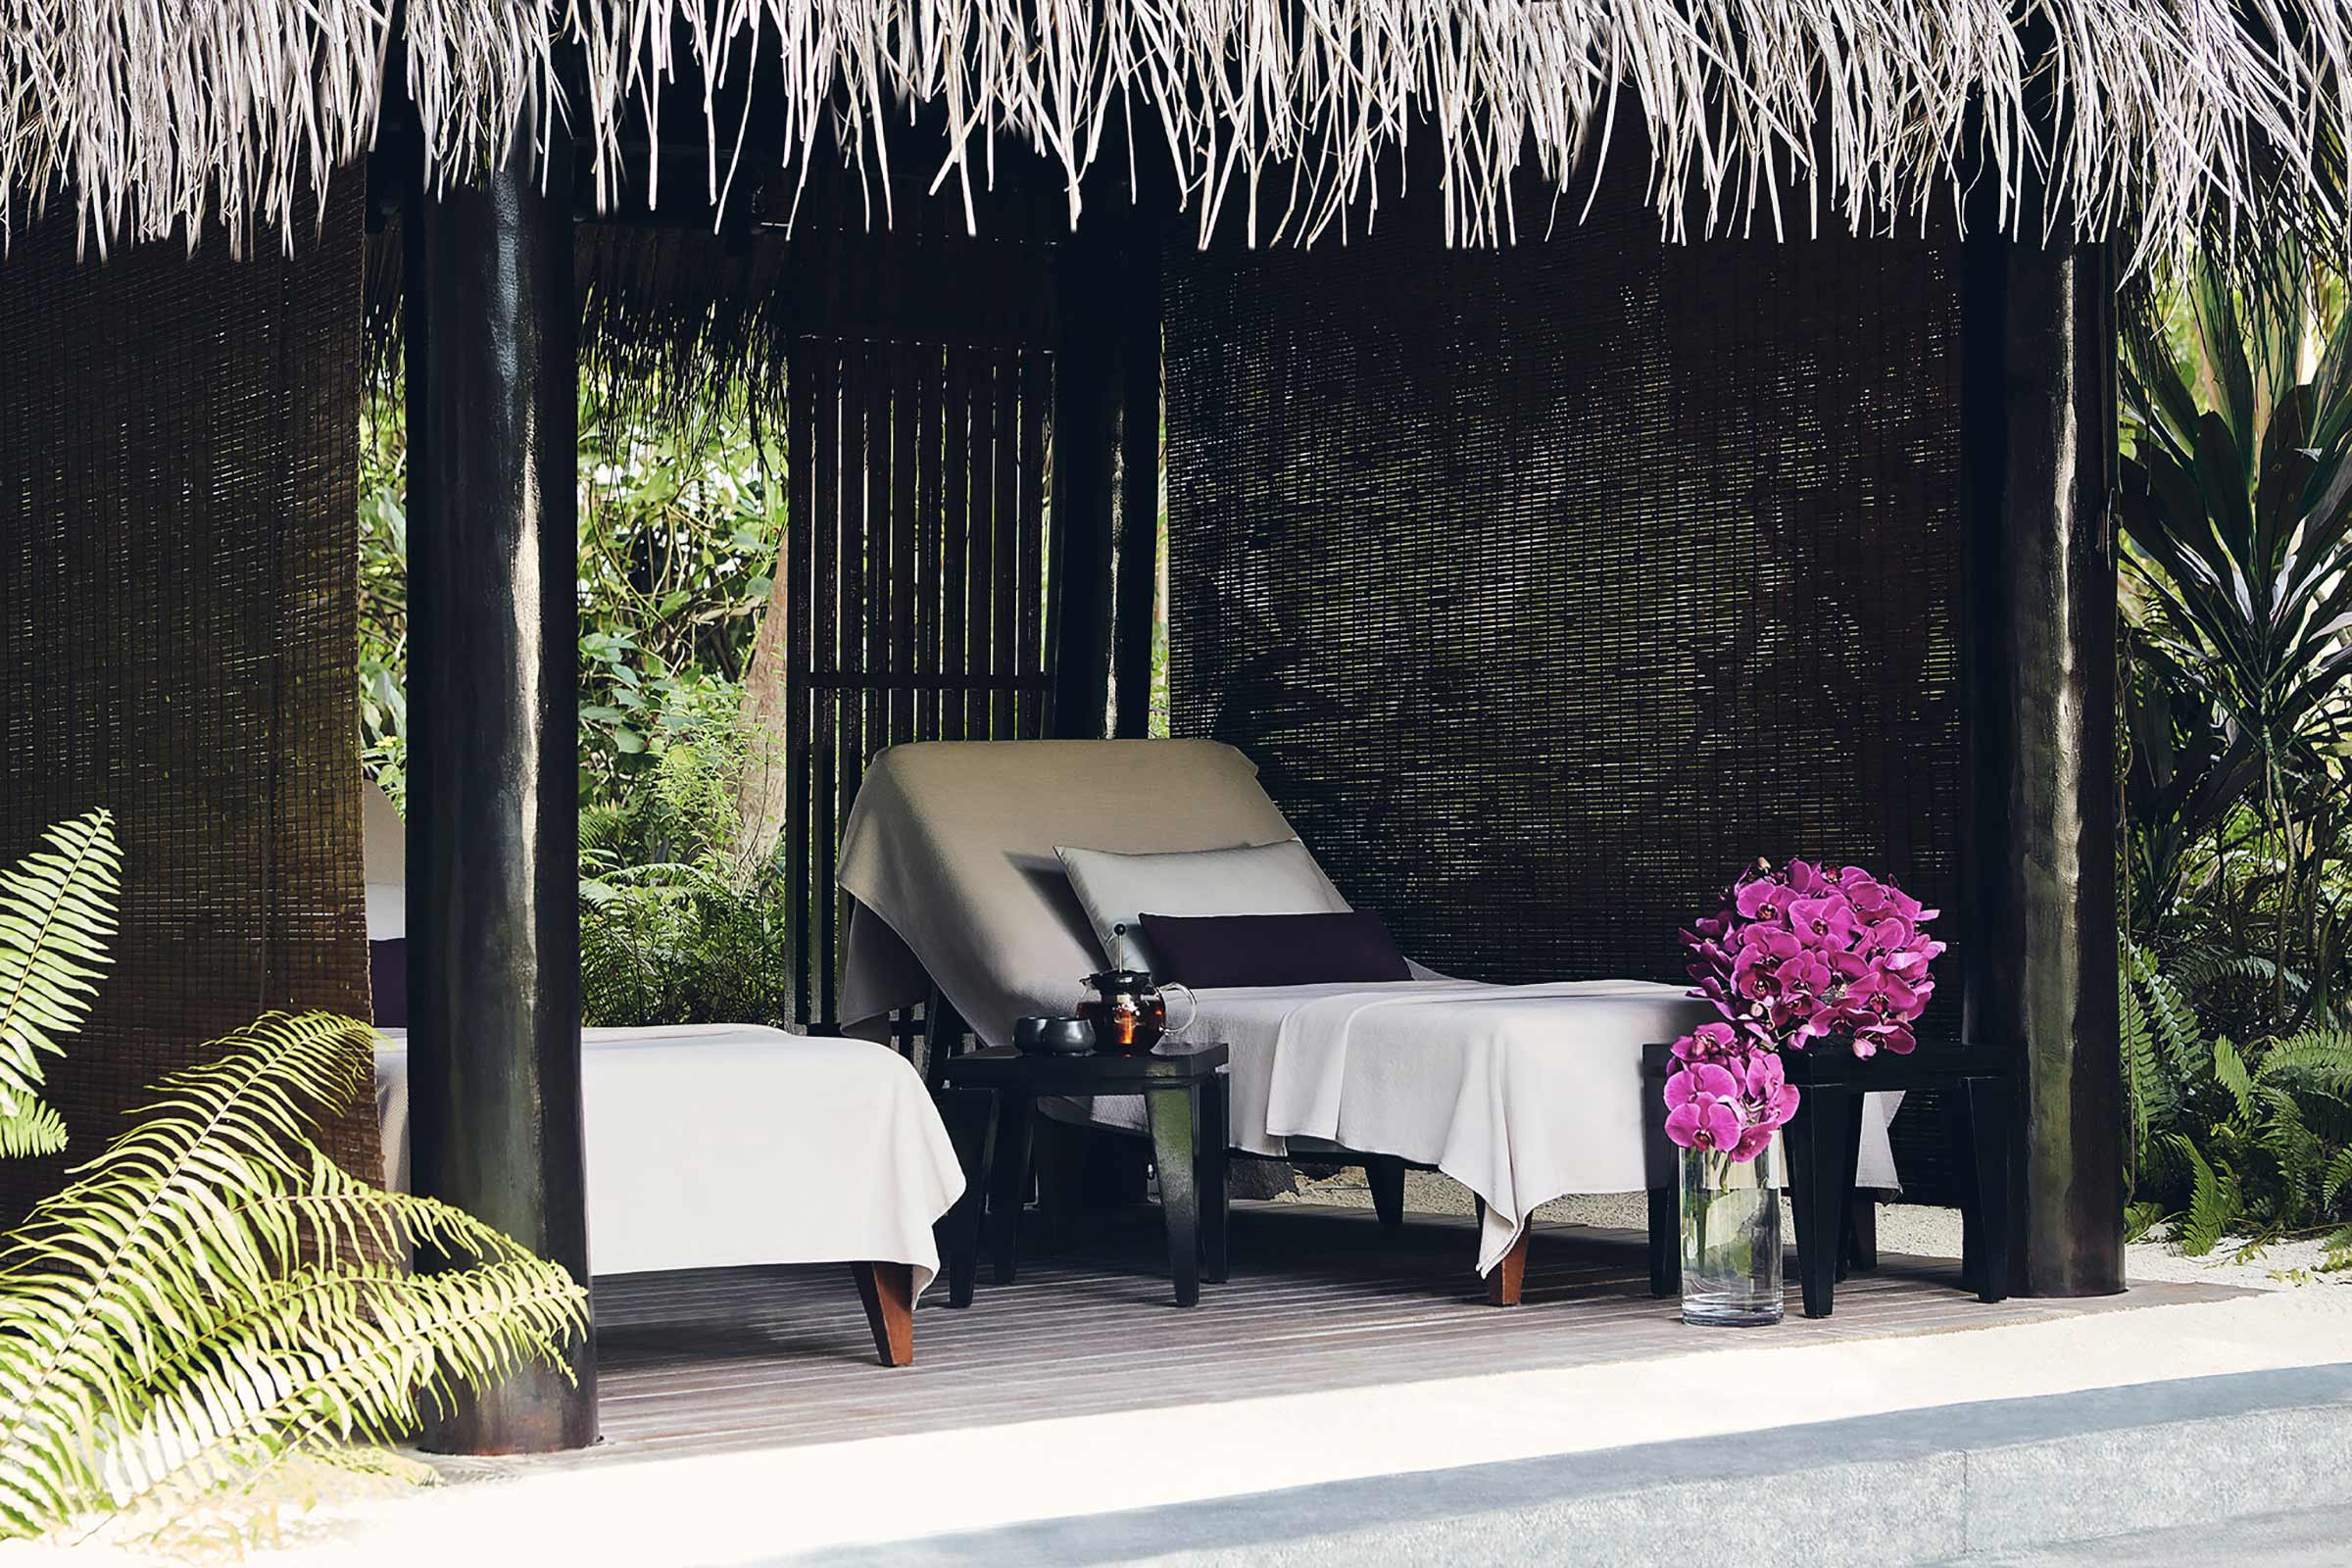 OO_ReethiRah_Spa_MassageHut_3.jpg